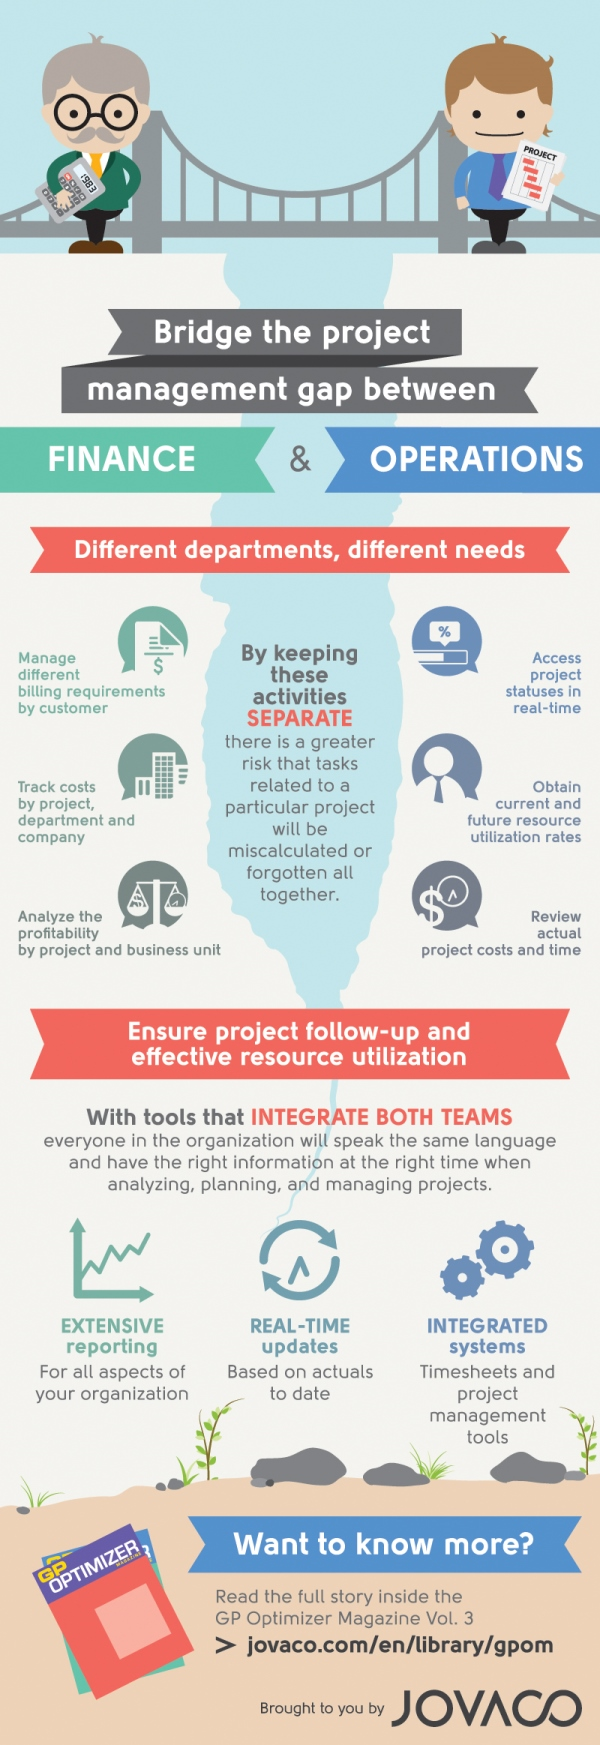 jovaco-solutions-infographic-bridge-project-management-gap-finance-operations-2